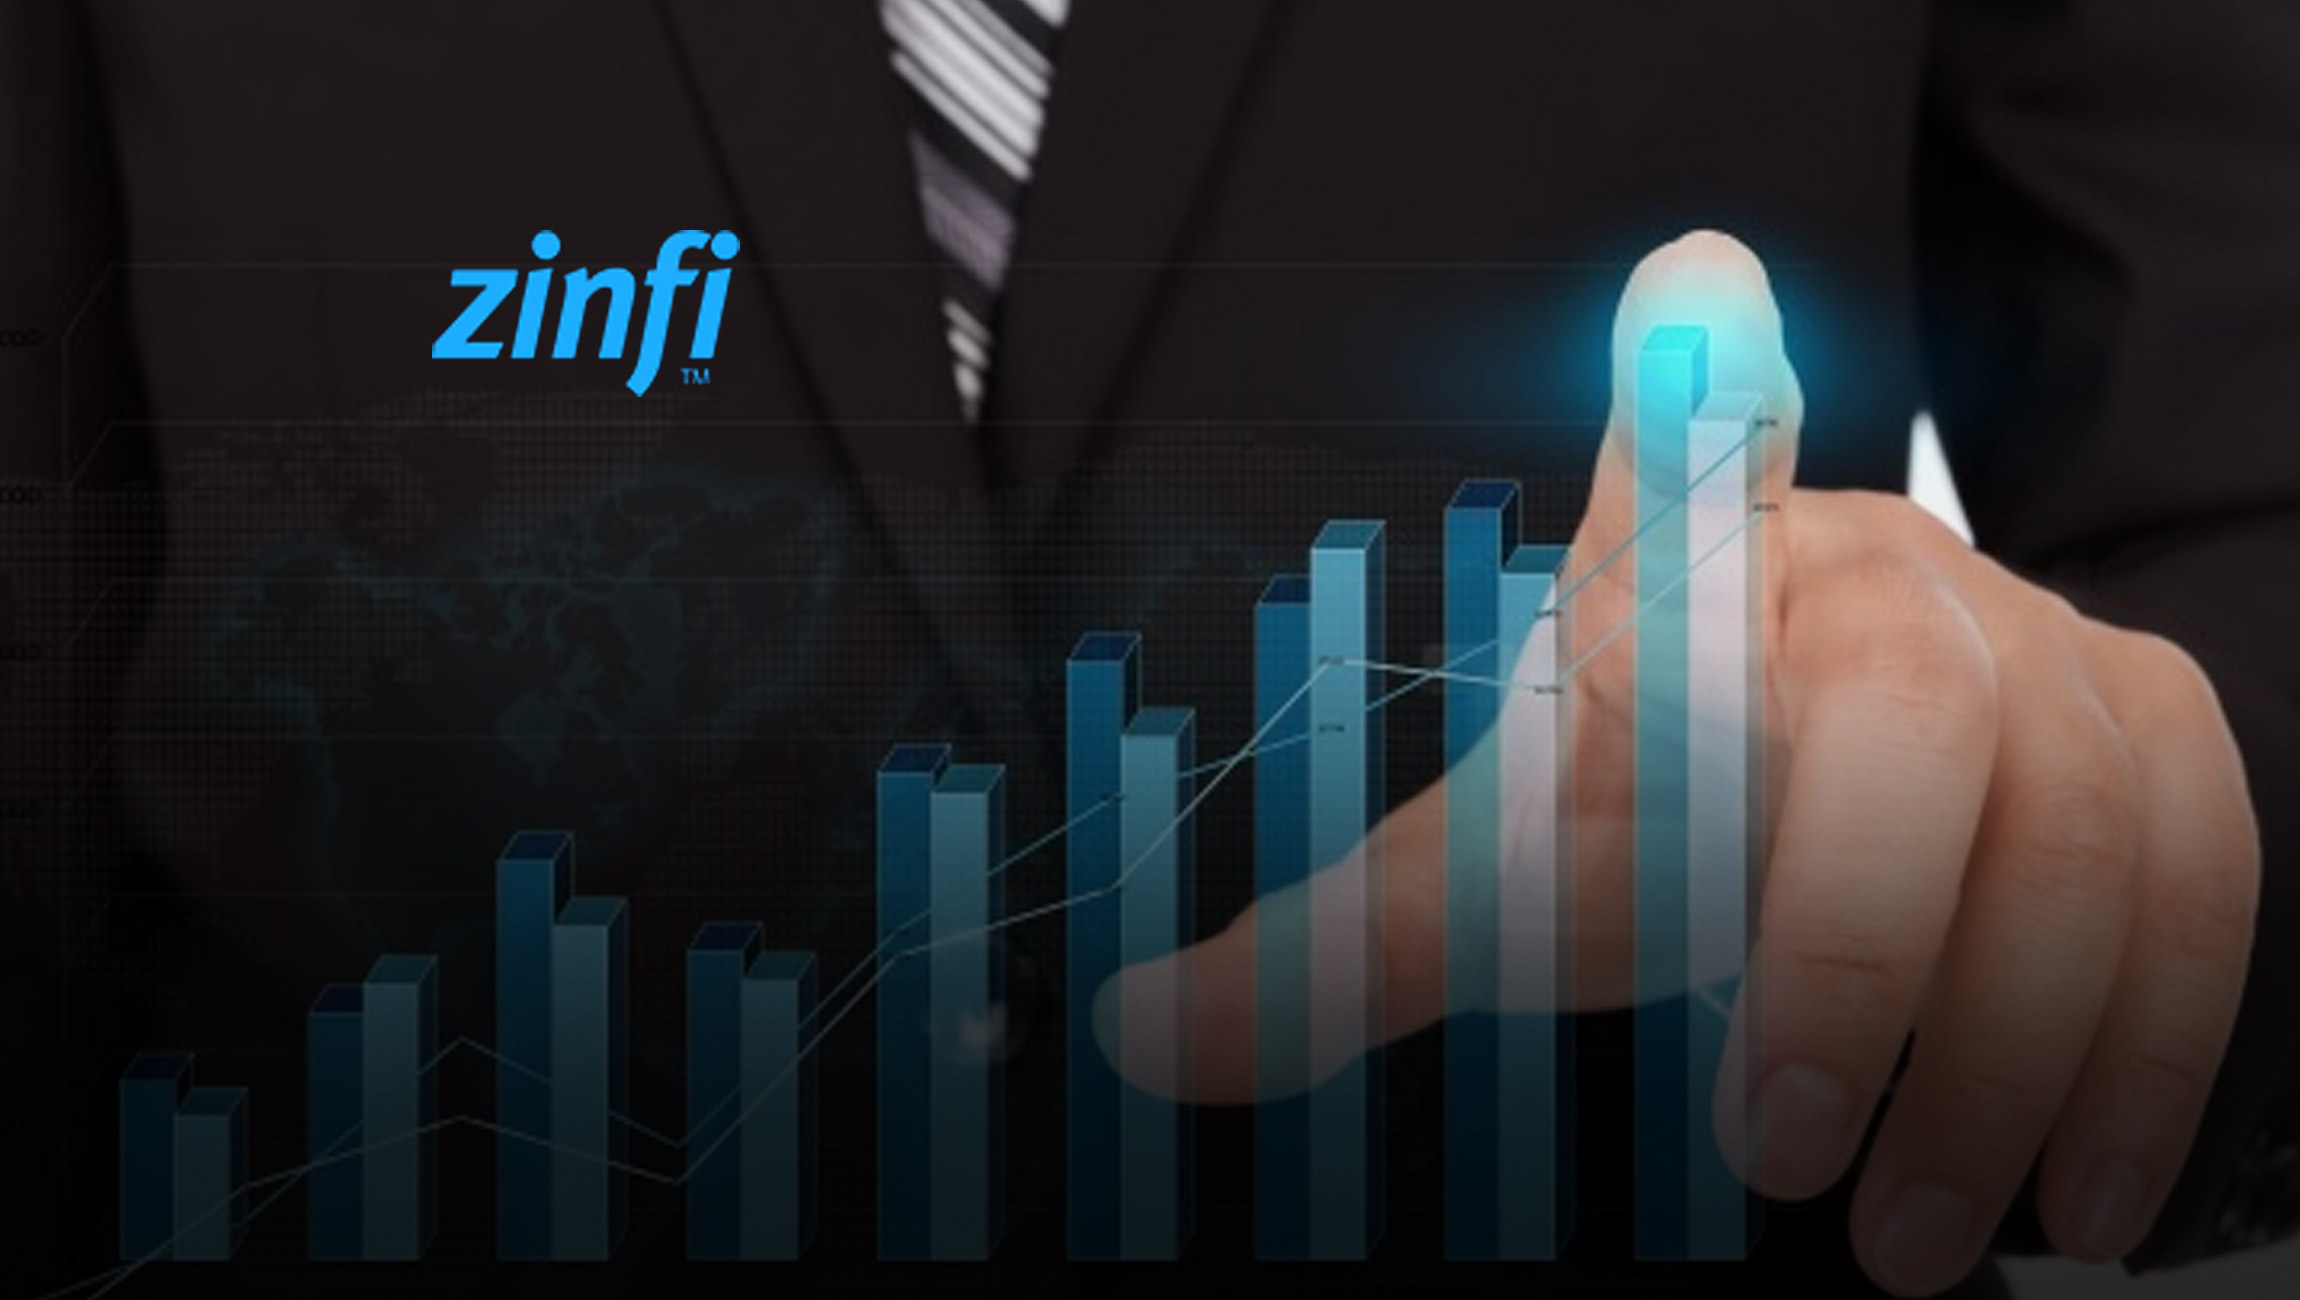 ZINFI-Ends-2020-with-Rapid-Growth-and-Recognition-from-Analyst-Firms-and-Customers-as-a-Leading-Partner-Relationship-Management-Software-Provider